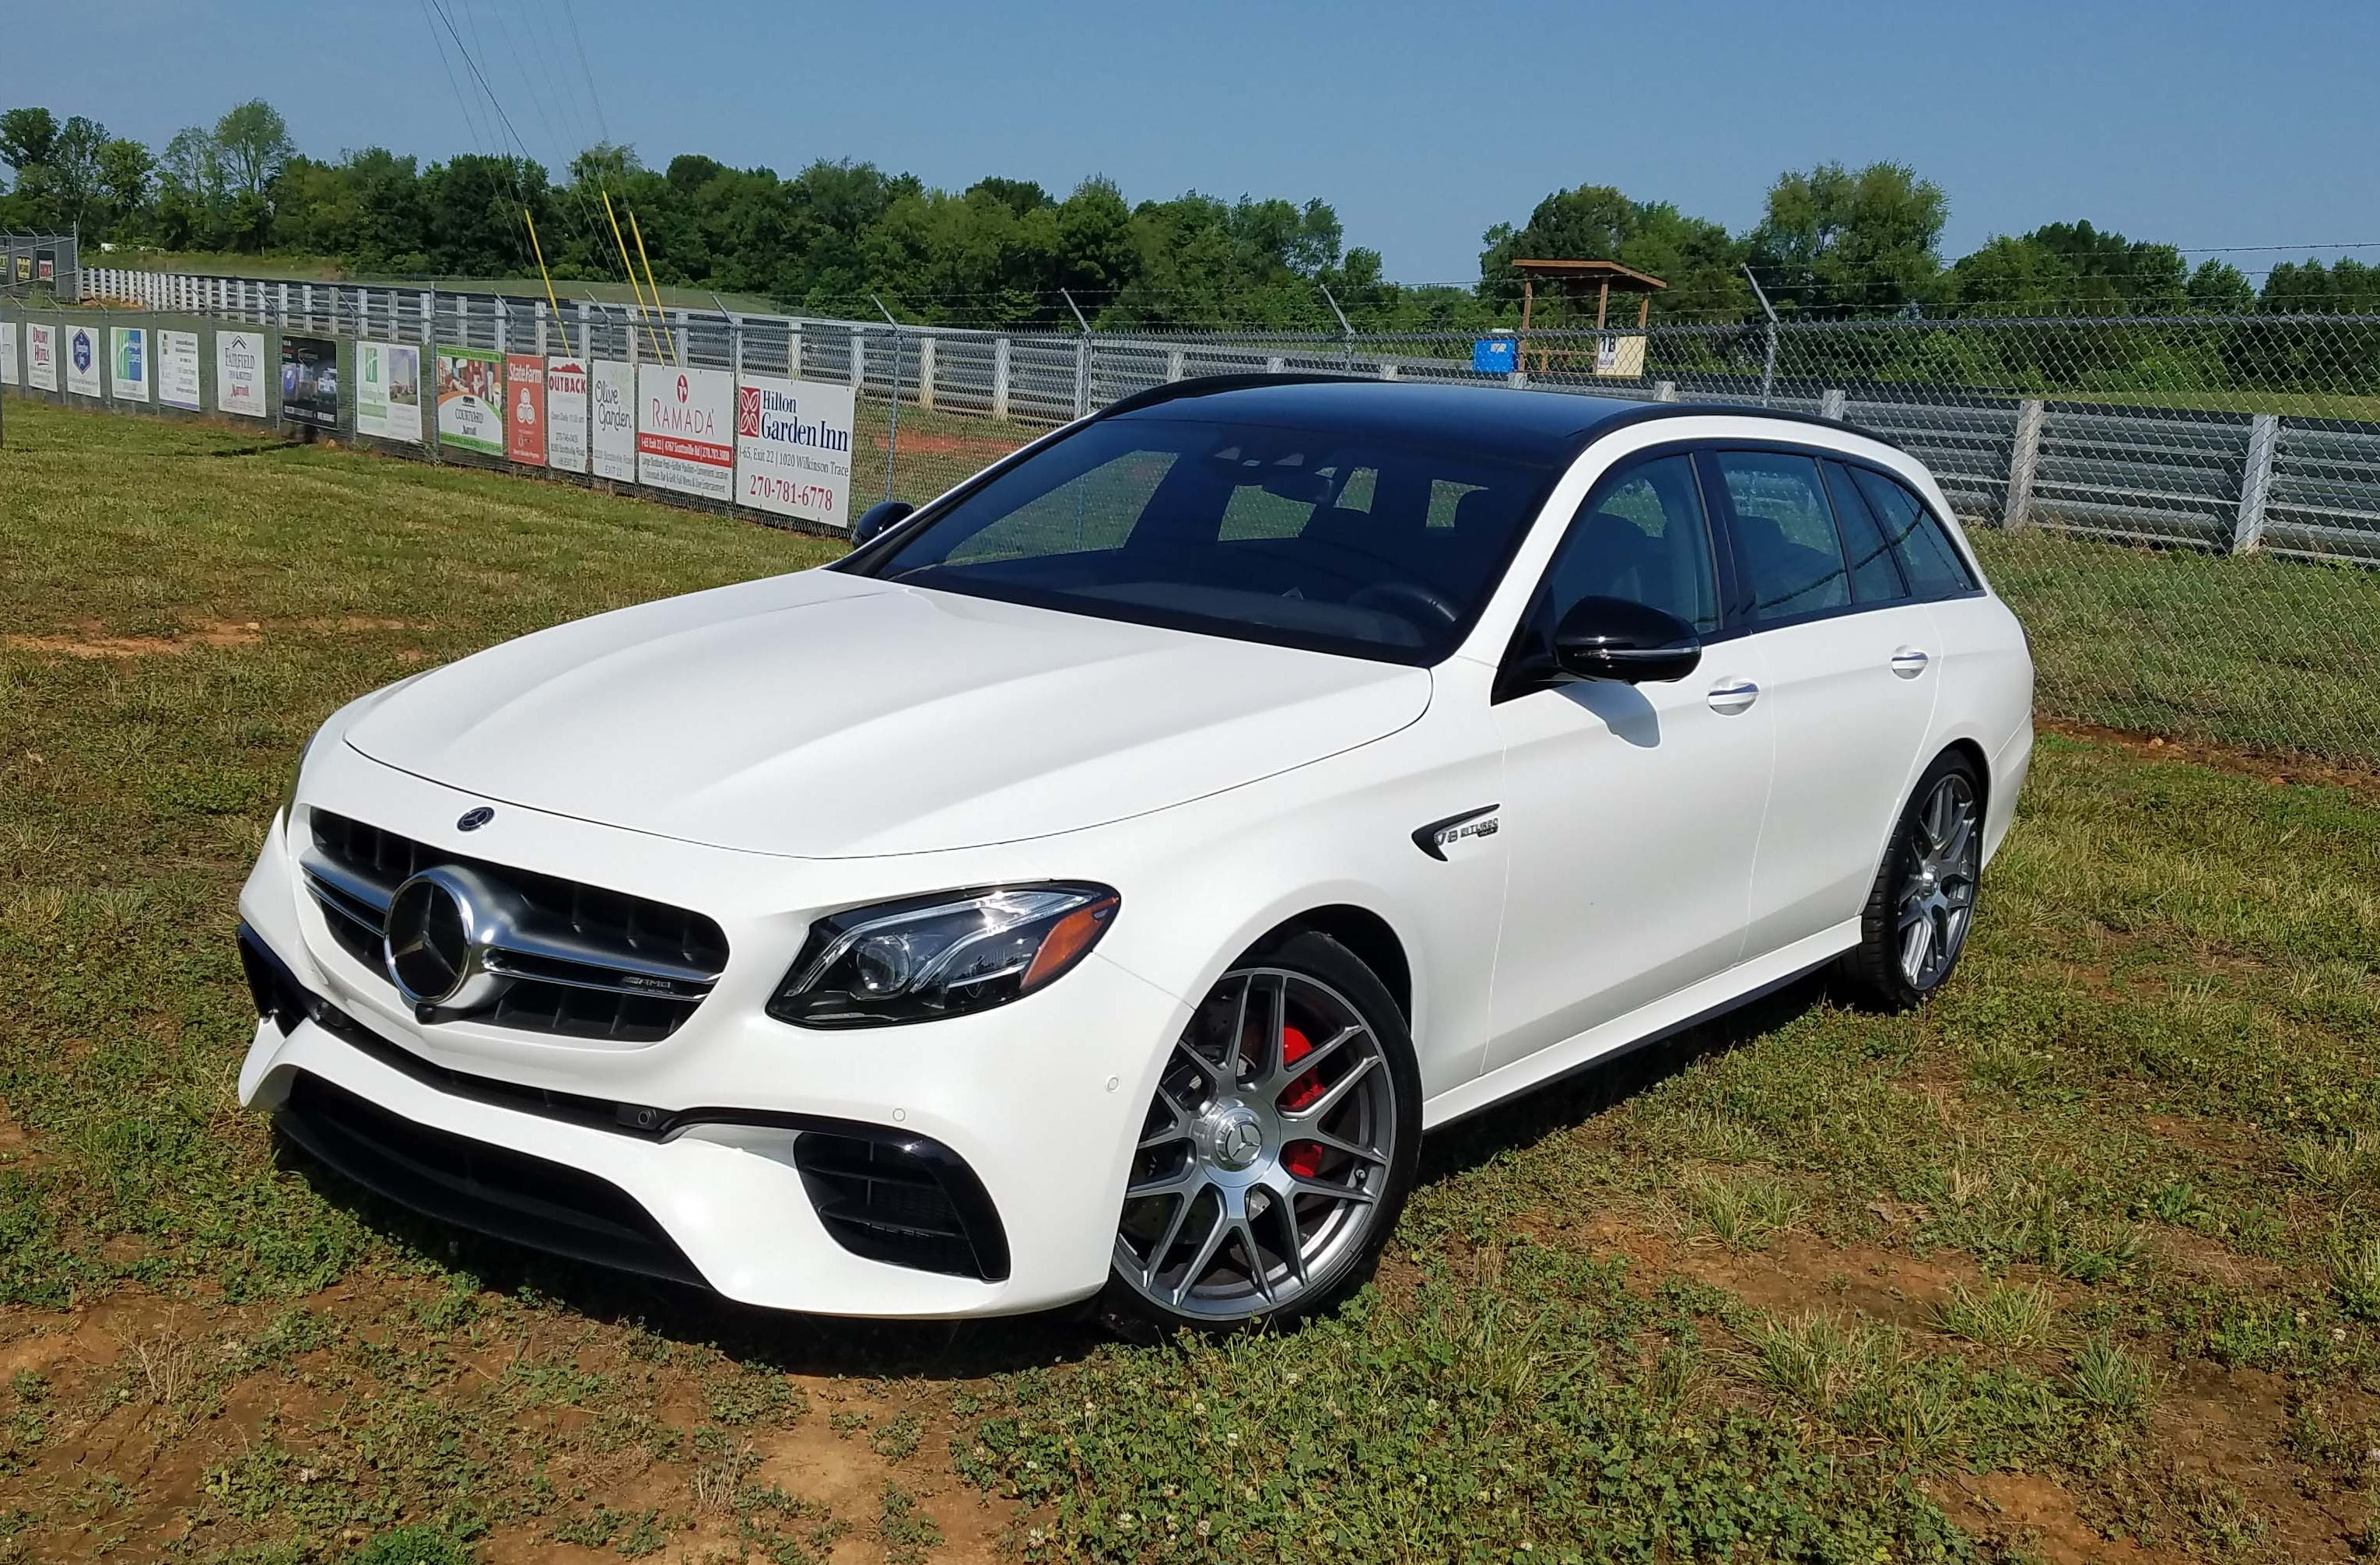 Unlike the dramatic Jaguar Sportbrake, the Mercedes-AMG E63 S wagon looks relatively civilized -but for its huge front air scoops and the rumble of its V-8 engine.